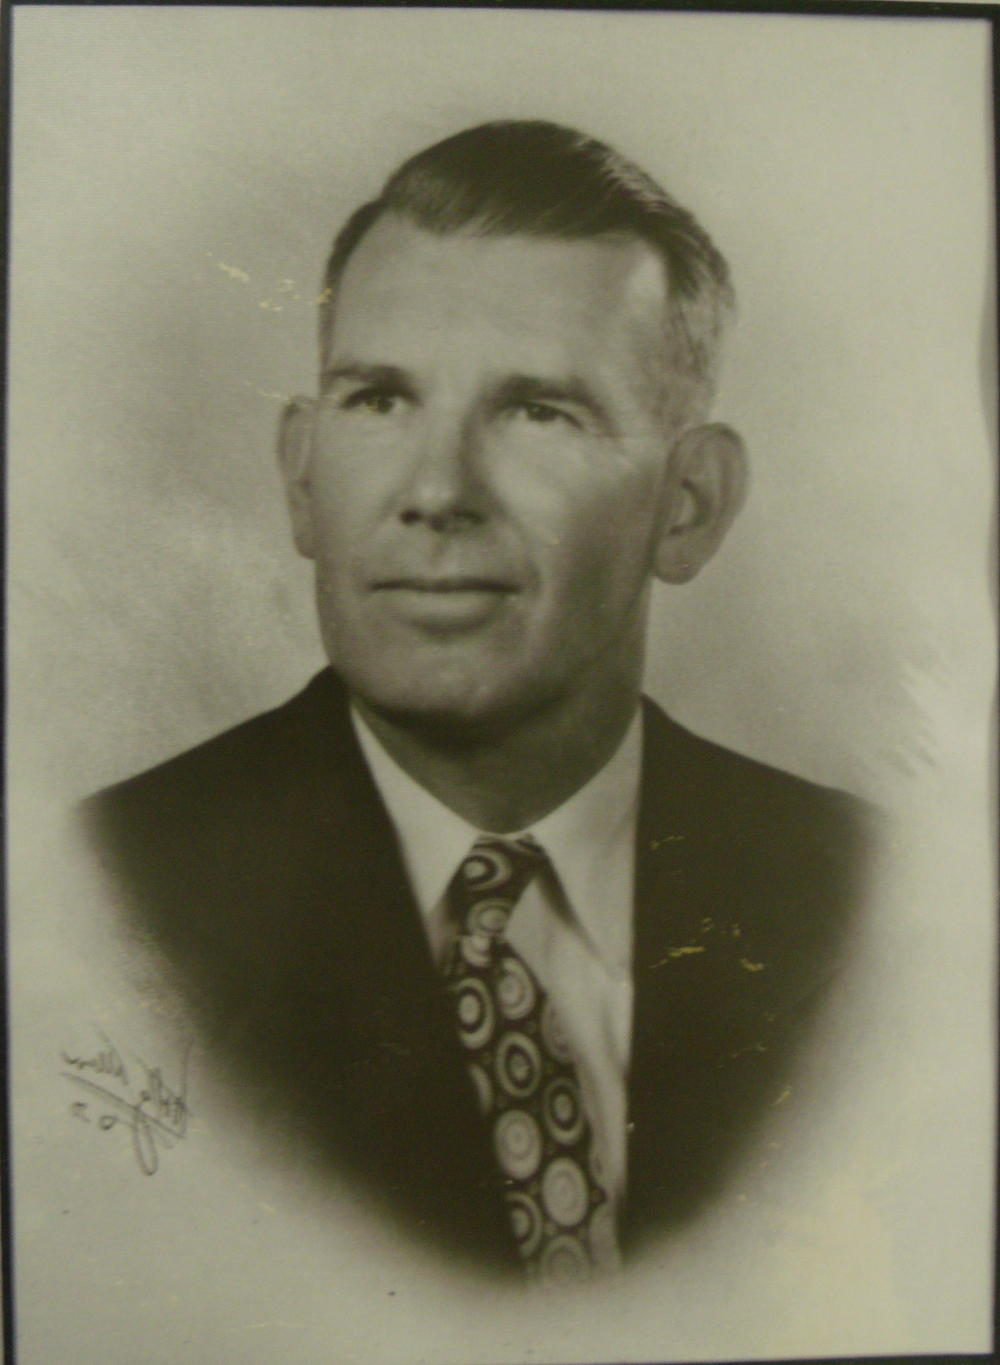 Dr. Archie B. Williford 1945 - 1961.jpg